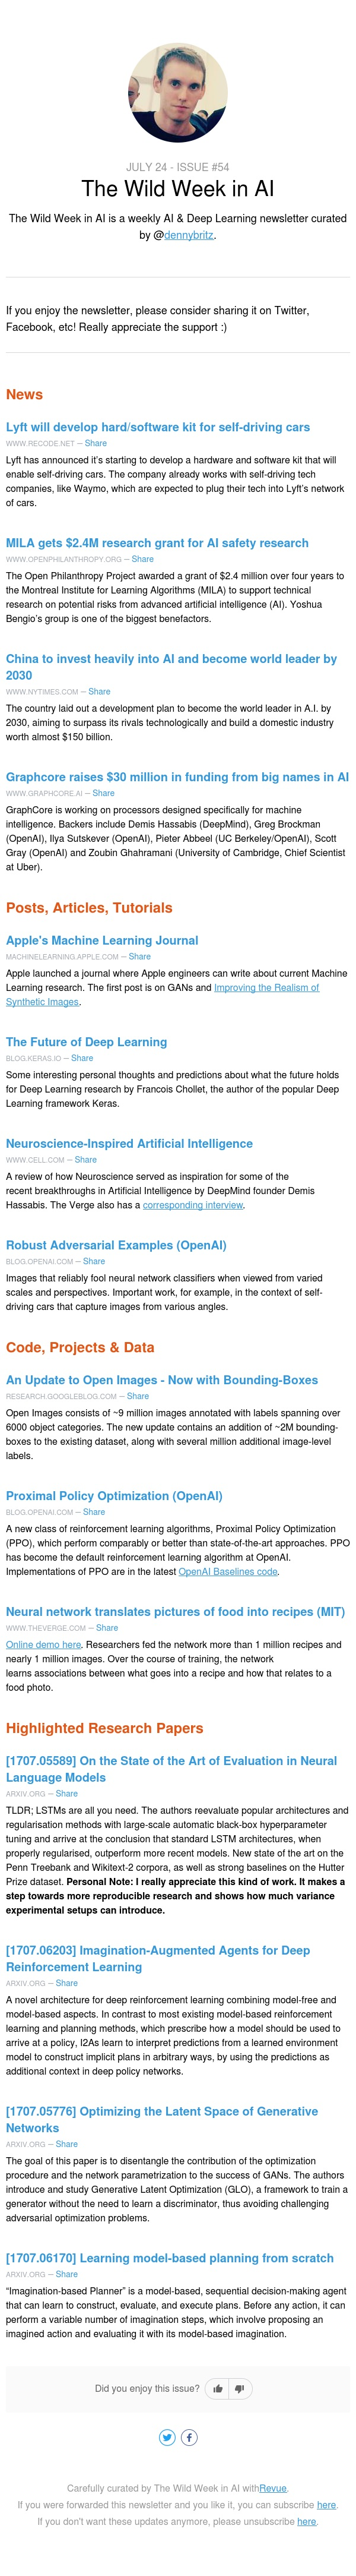 The Wild Week in AI - Lyft invests in self-driving car tech; Apple launches ML Journal; The Future of Deep Learning;